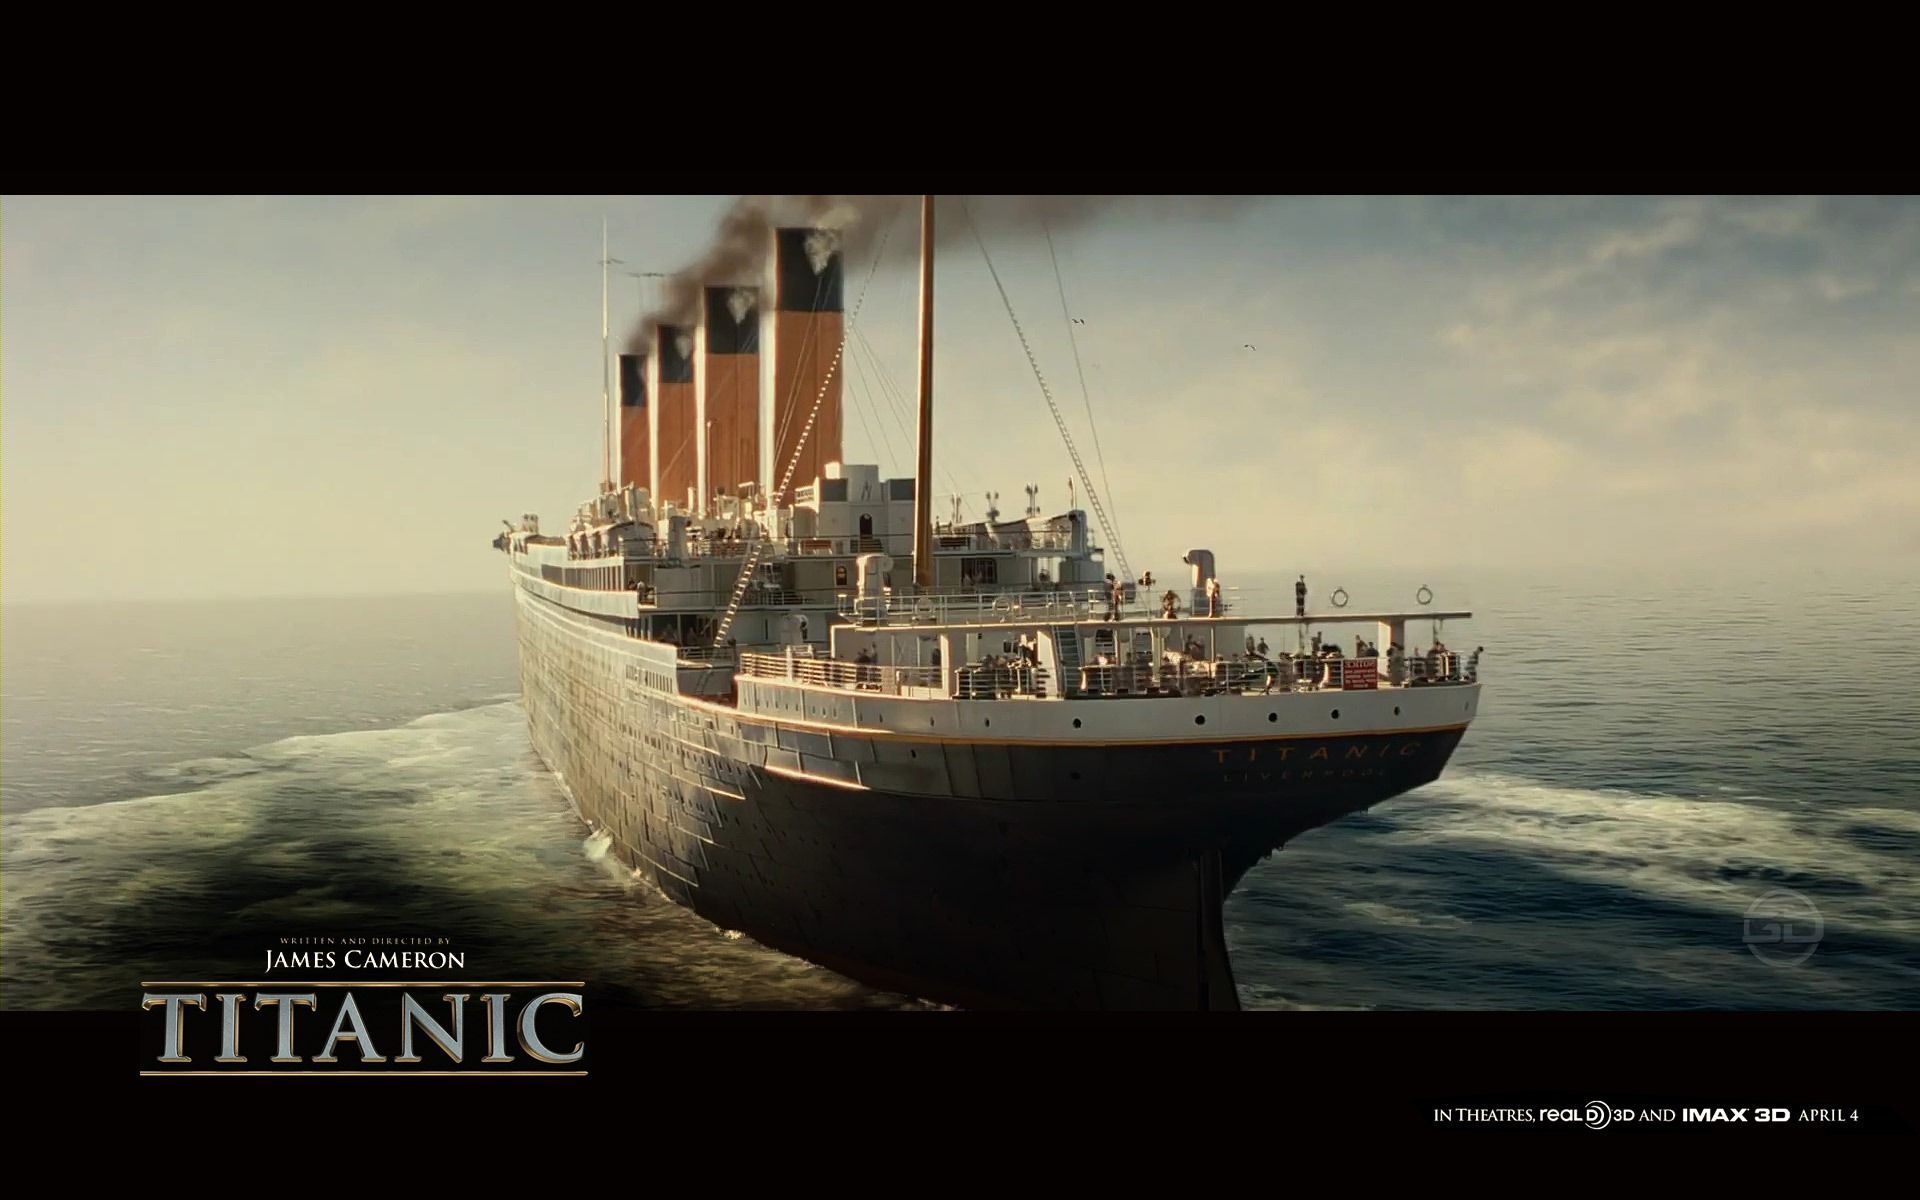 Titanic Ship 3d Wallpaper Free Download Titanic Movie Images Wallpapers 45 Wallpapers Adorable